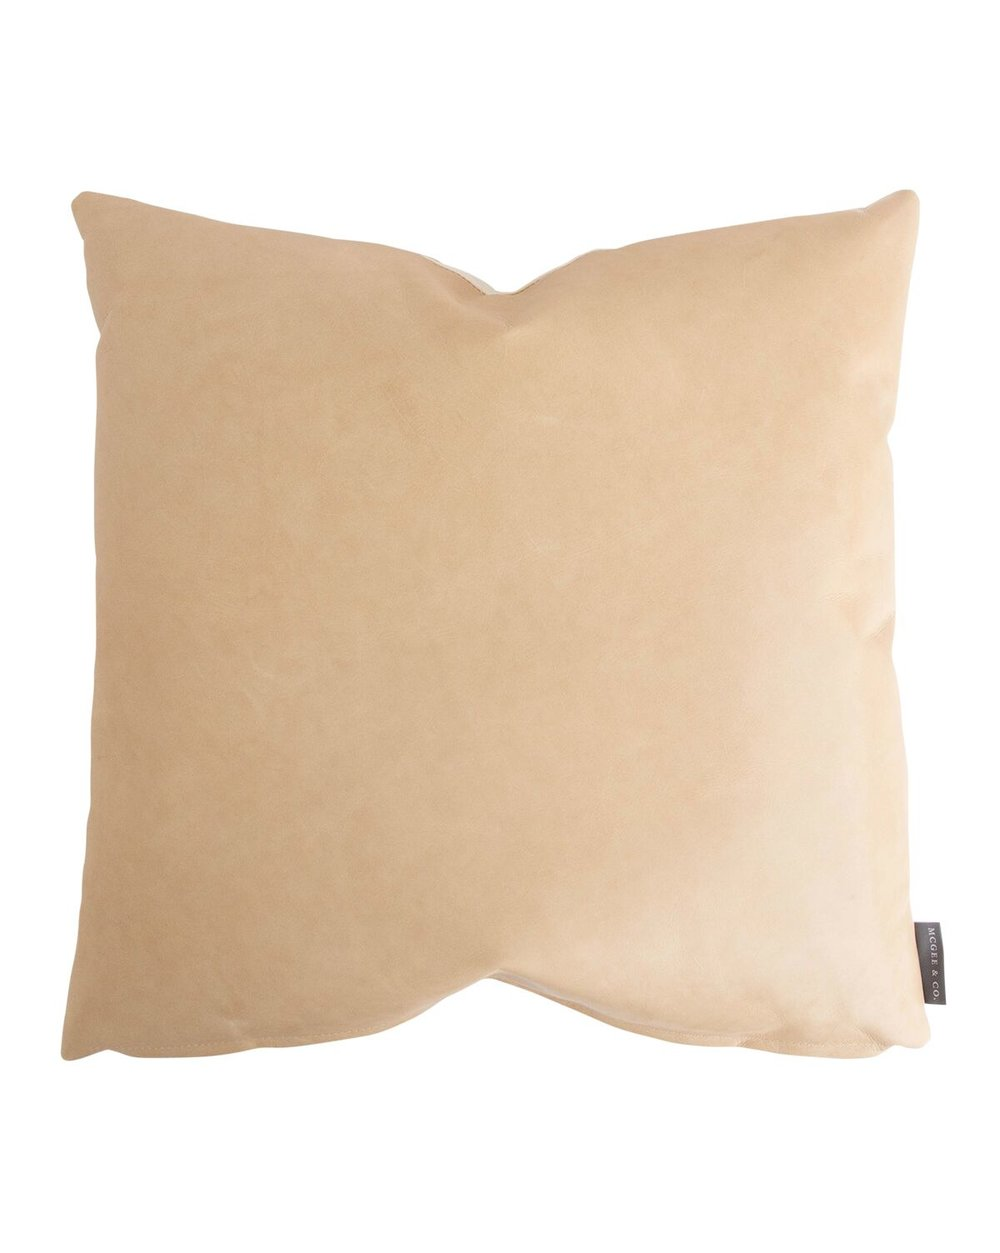 Palomino Pillow 3_preview.jpg